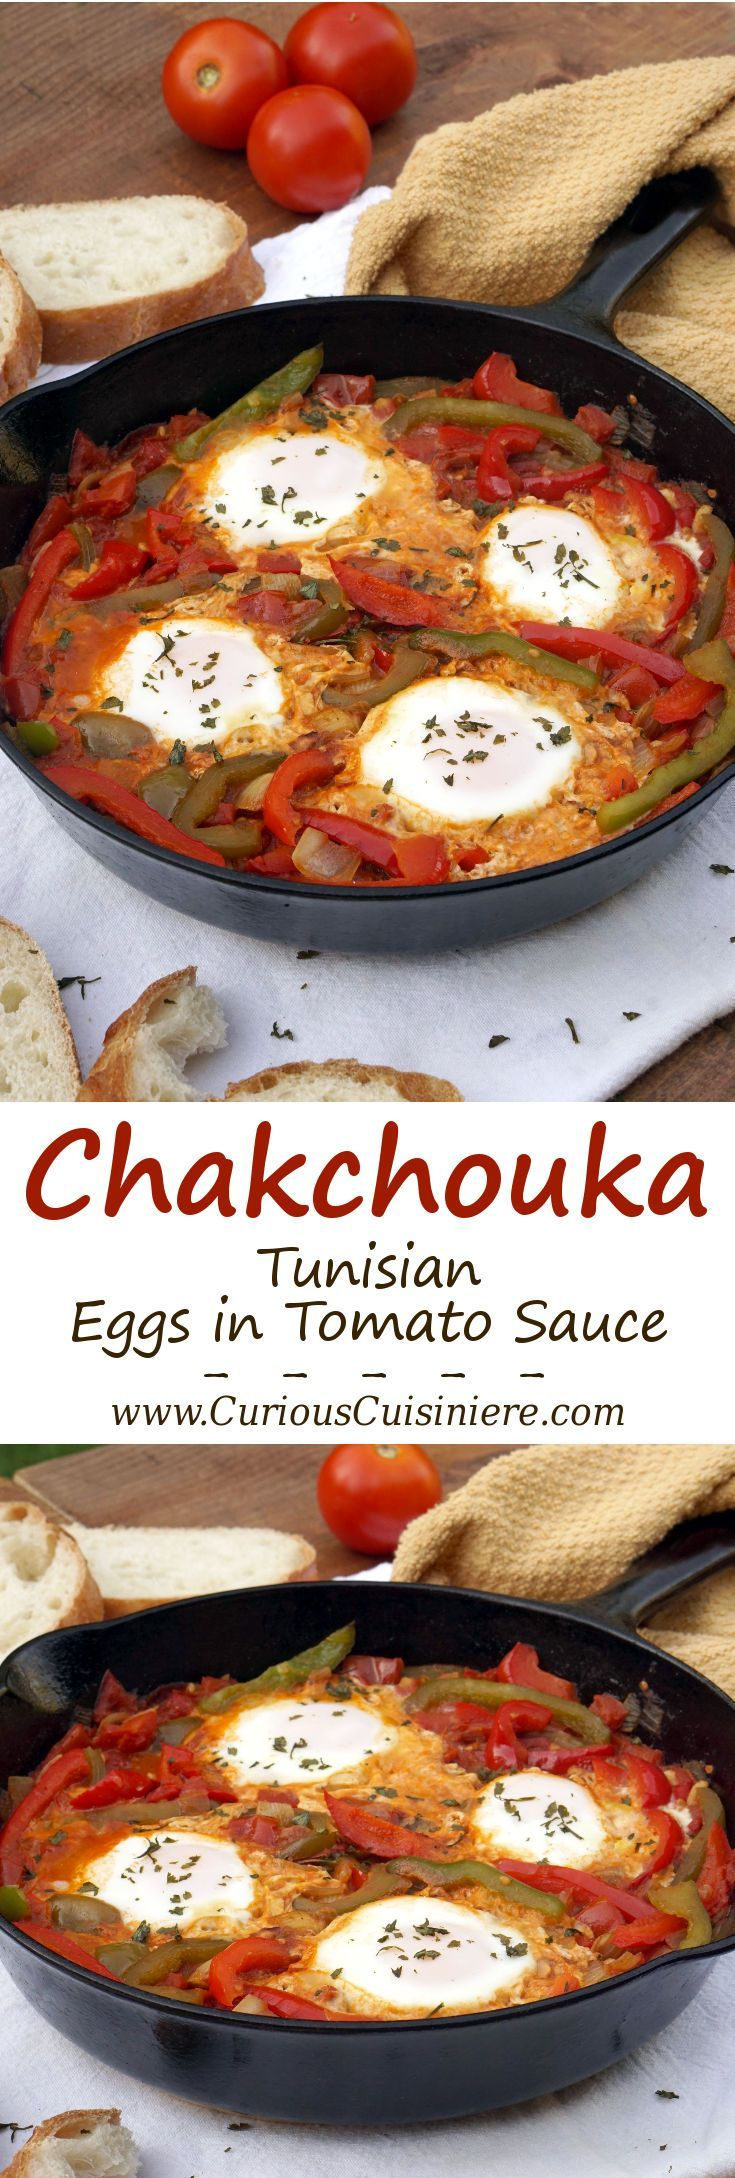 An easy yet hearty African dish of eggs in a fragrant tomato sauce, Chakchouka…